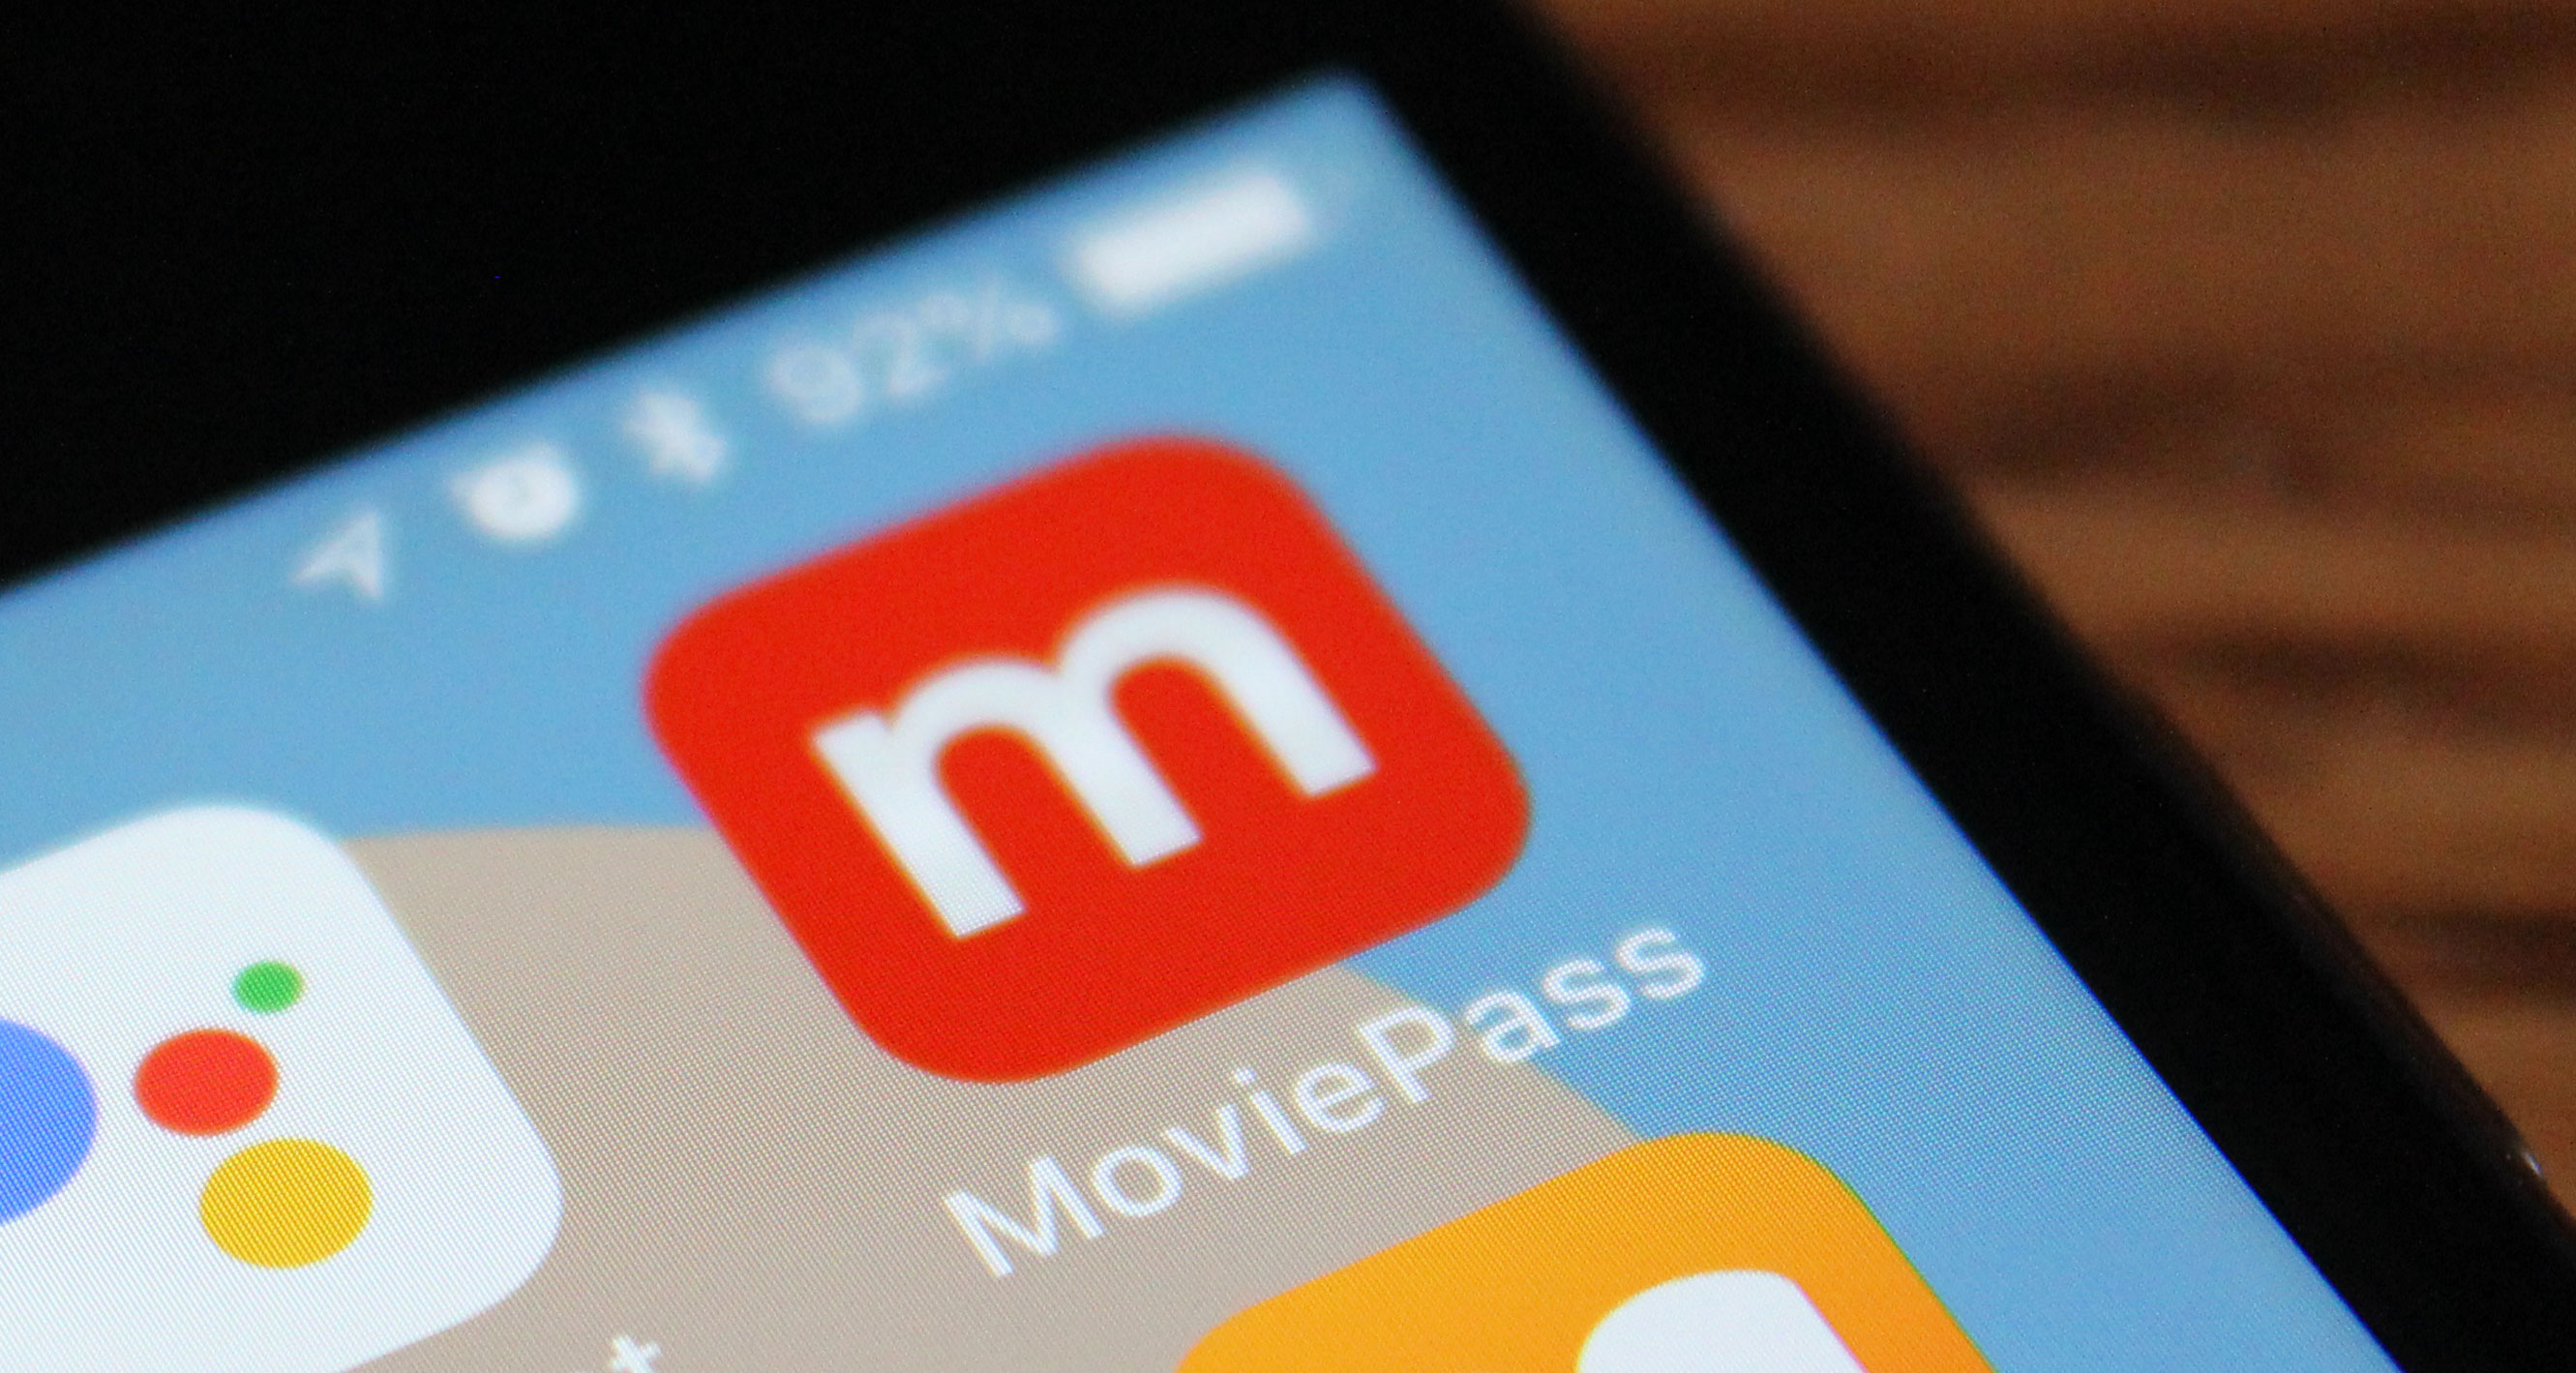 MoviePass explains how its new surge pricing will work